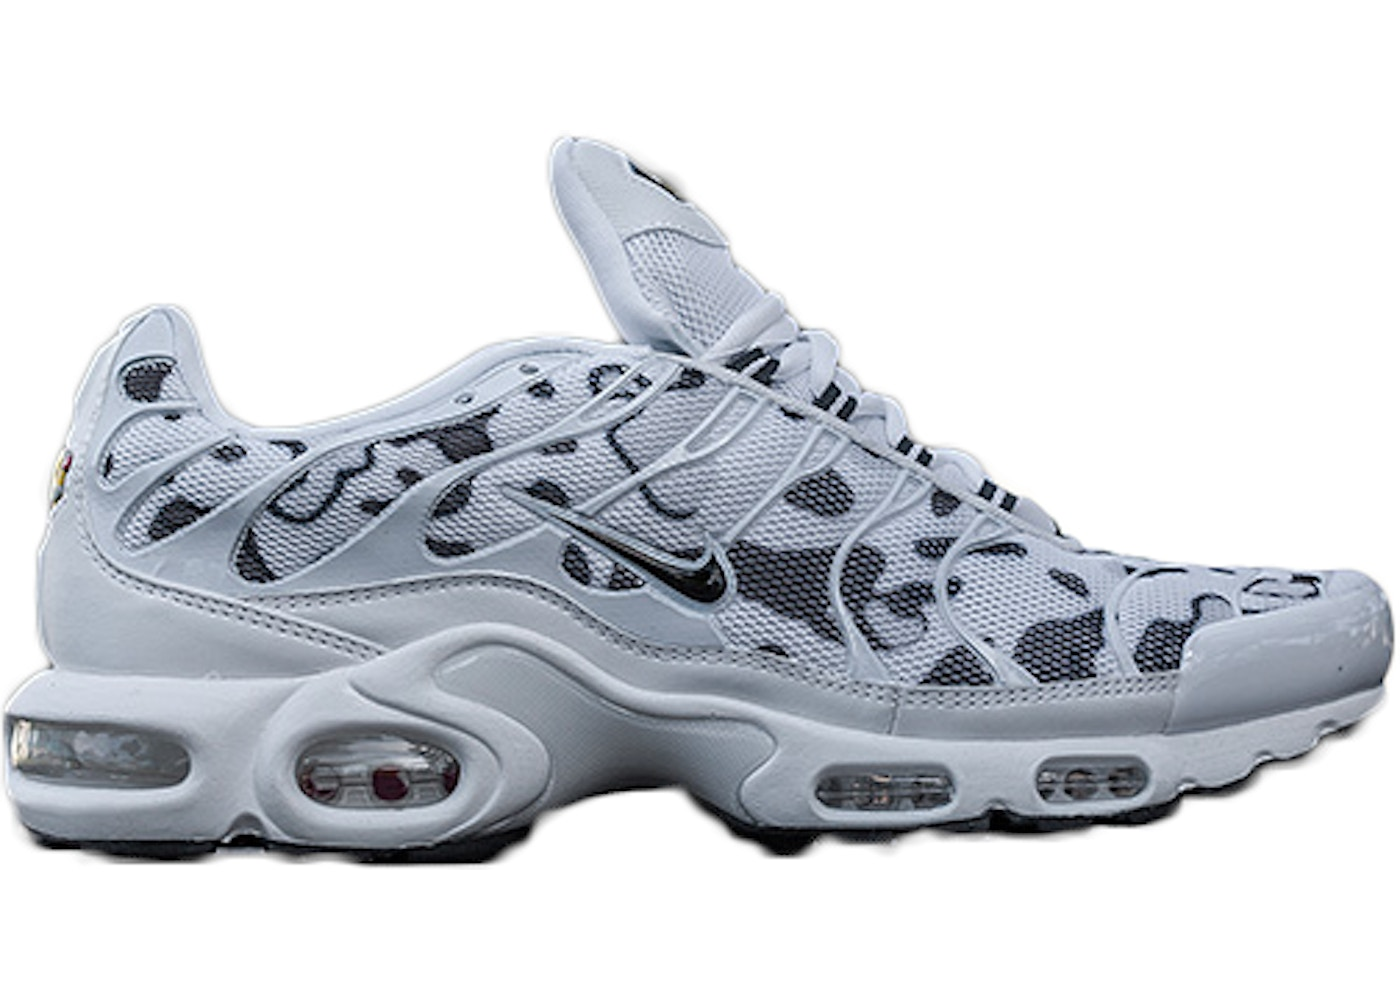 Plus Air Air Max Commando Max Sneakers iwulZTOPkX